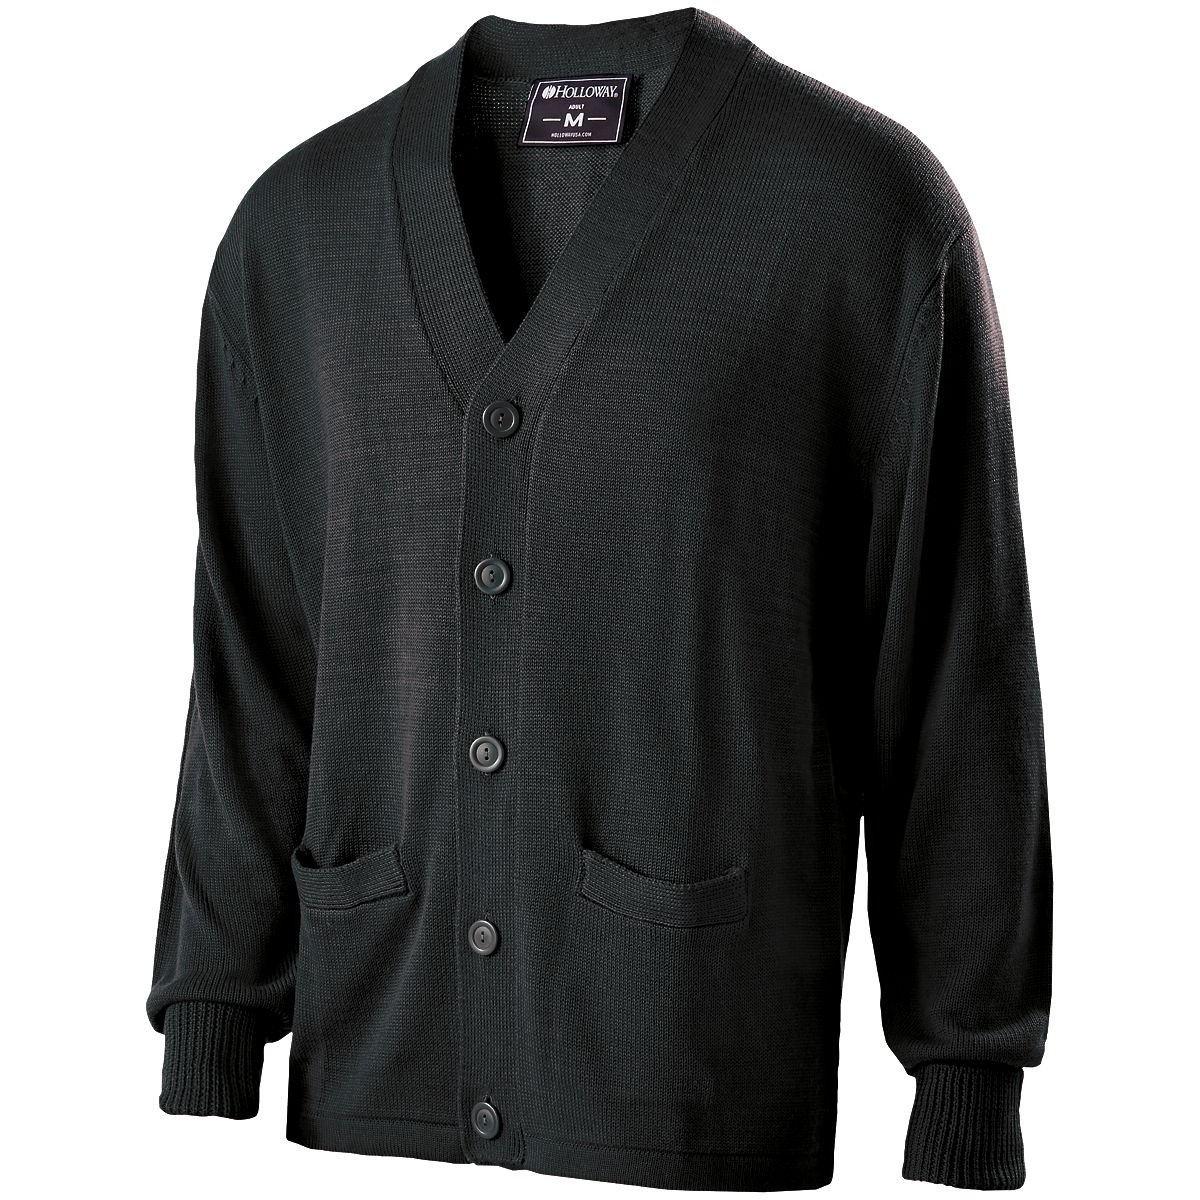 Holloway Sportswear LETTERMAN SWEATER Men's XS Black